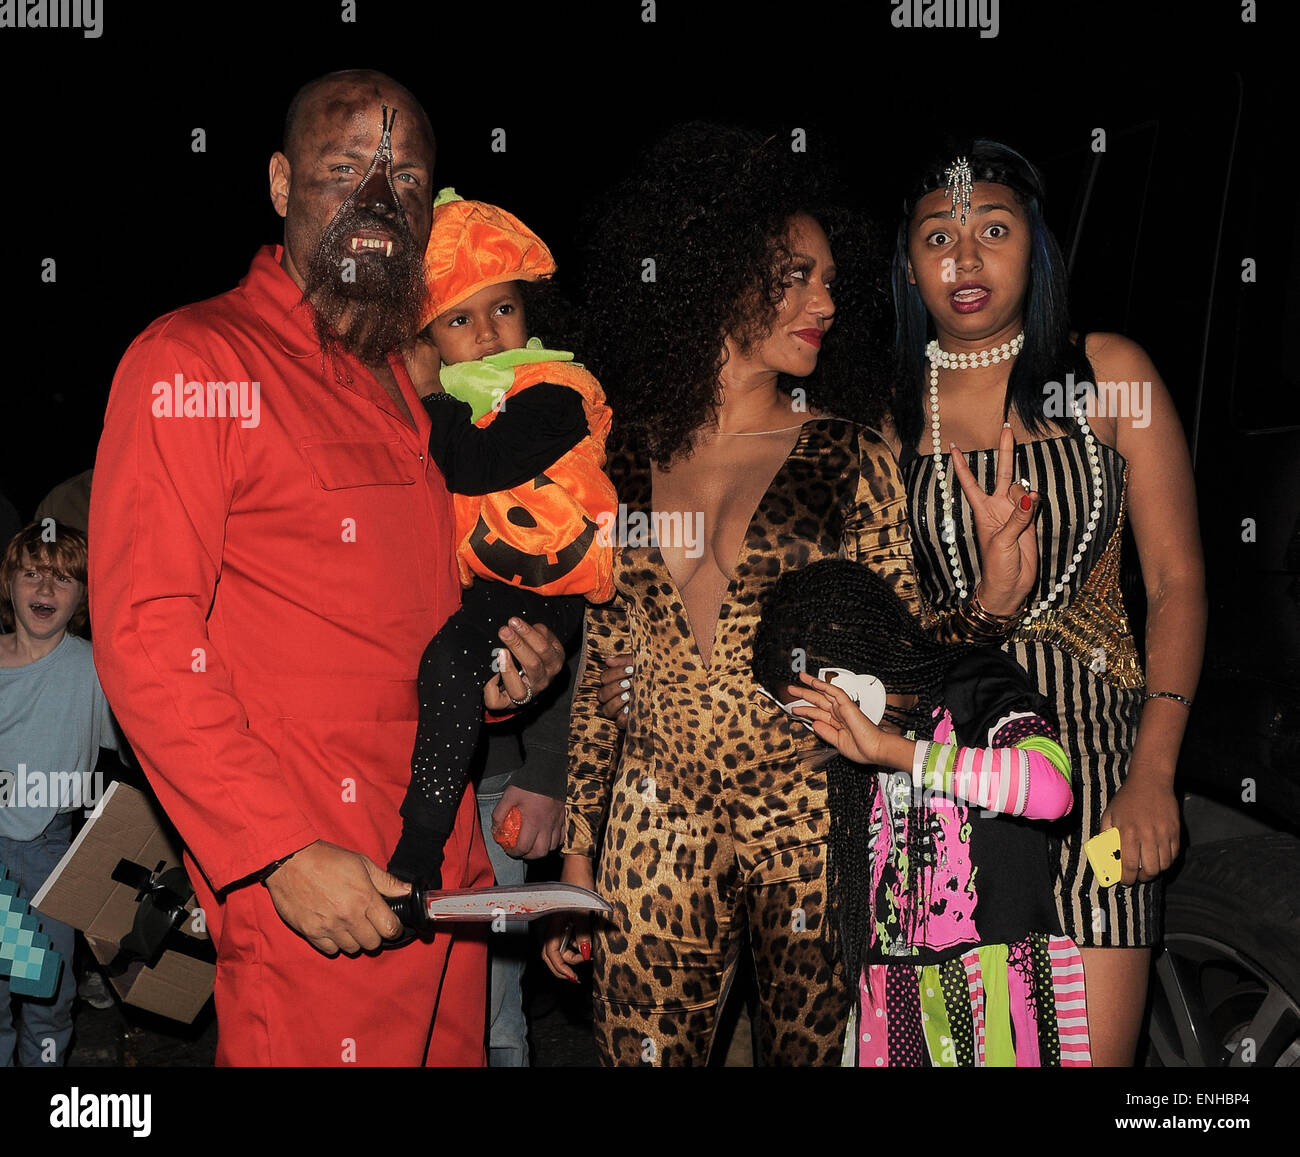 jonathan ross halloween party arrivals featuring mel bstephen belafontephoenix chiangelmadison where london united kingdom when 31 oct 2014